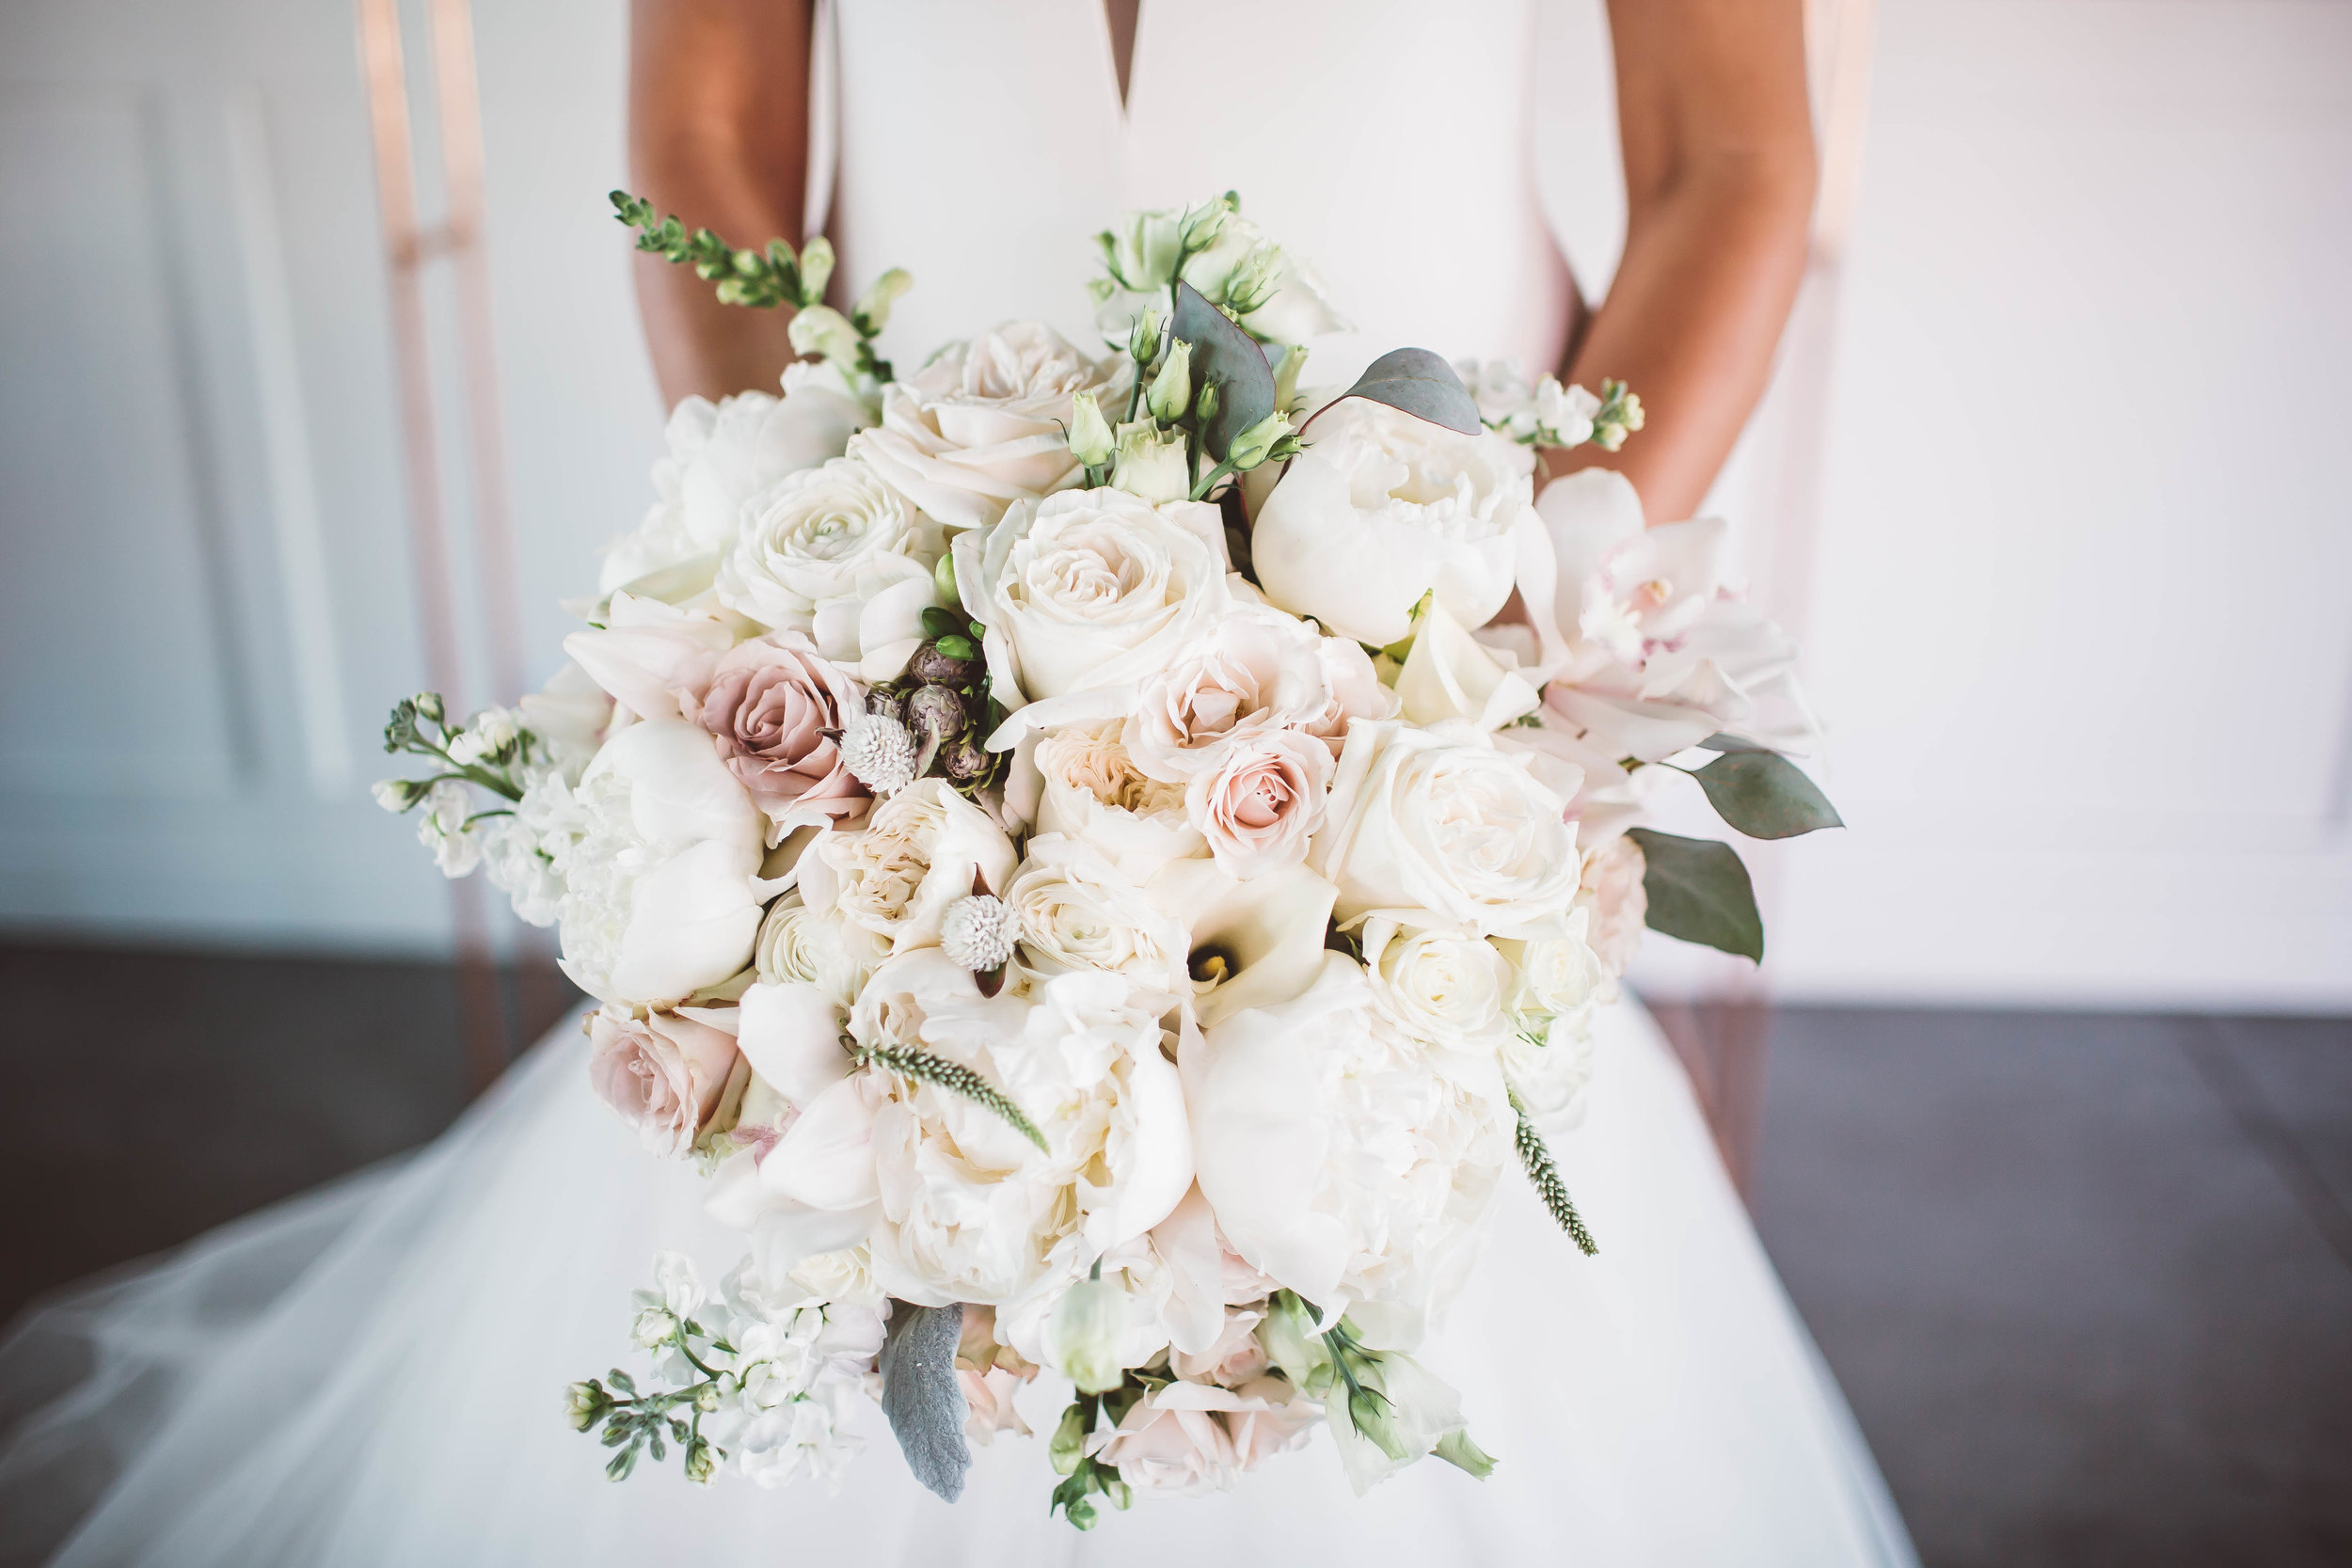 Round Bouquet with Slight Cascade  Style: elegant, minimal greenery  Details: peonies, orchids, lisianthus, quicksand roses, veronica, garden roses, minimal eucalyptus greenery   {Photo courtesy of    Atley + Liz Collective   }